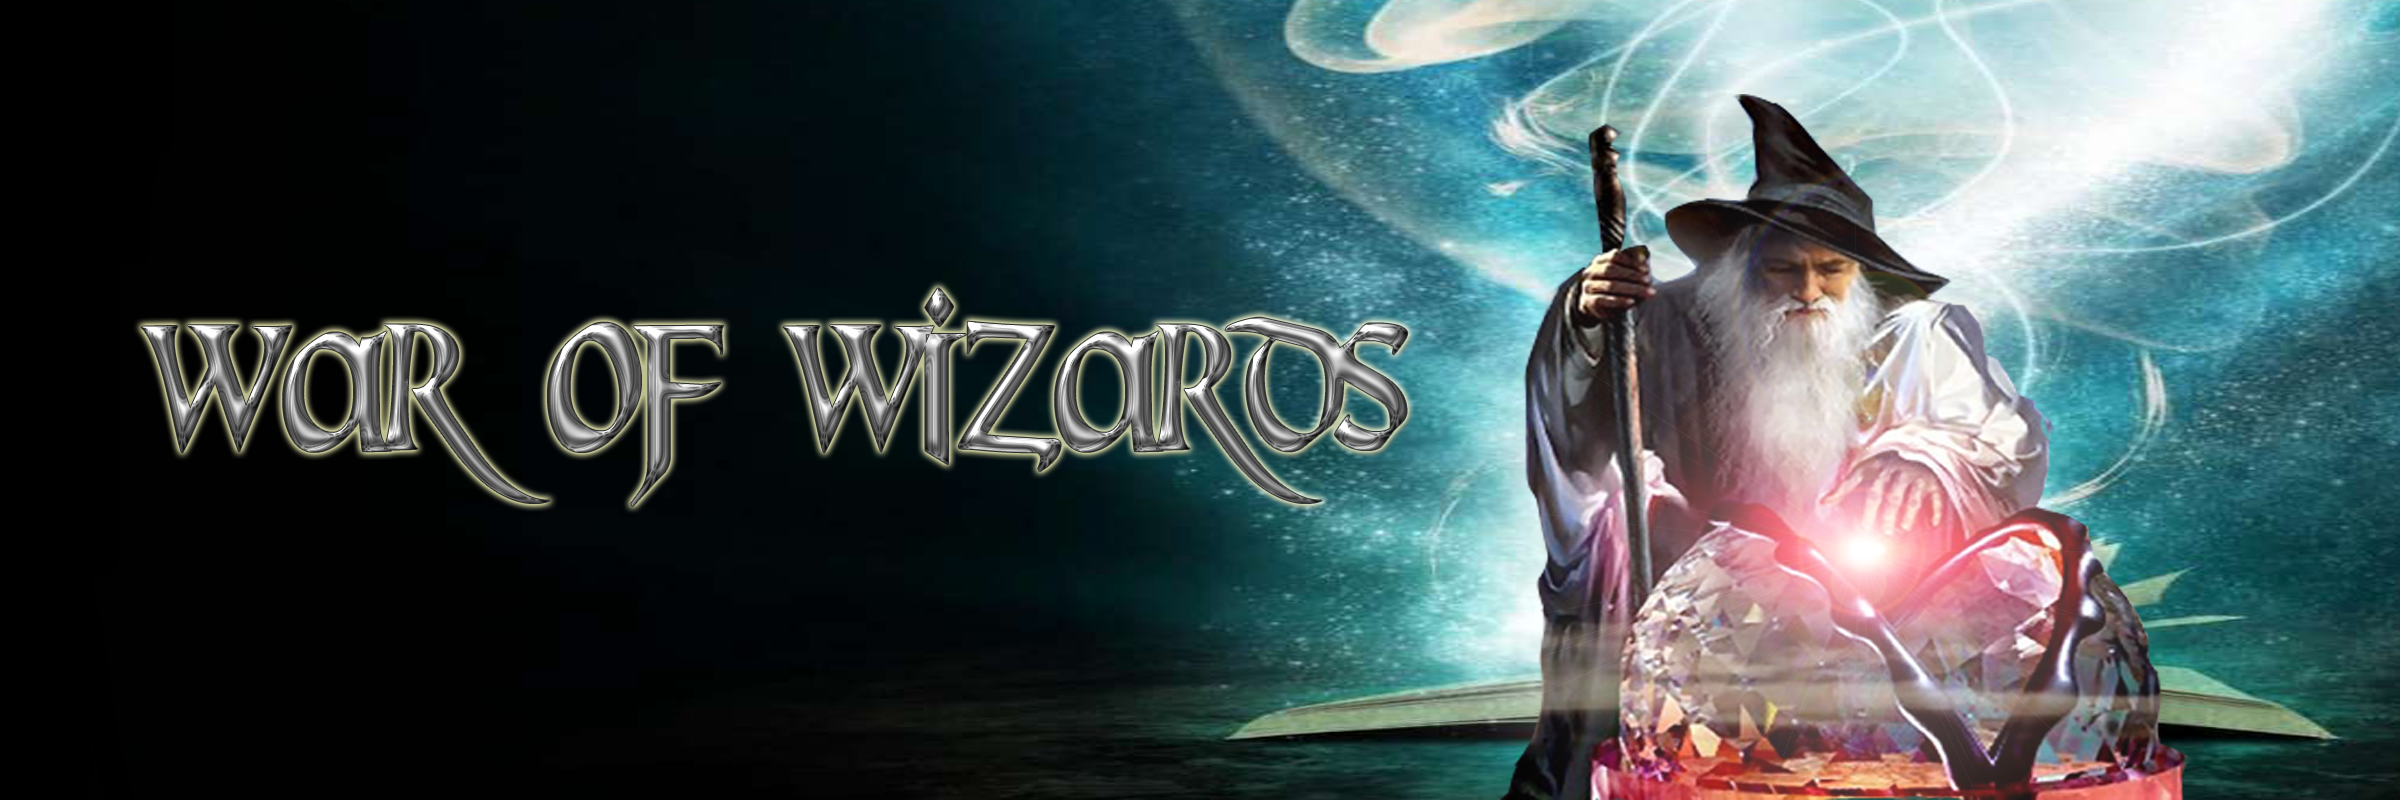 Banner Ad Design by Lara Puno - Entry No. 23 in the Banner Ad Design Contest Banner Ad Design - War of Wizards (fantasy game).